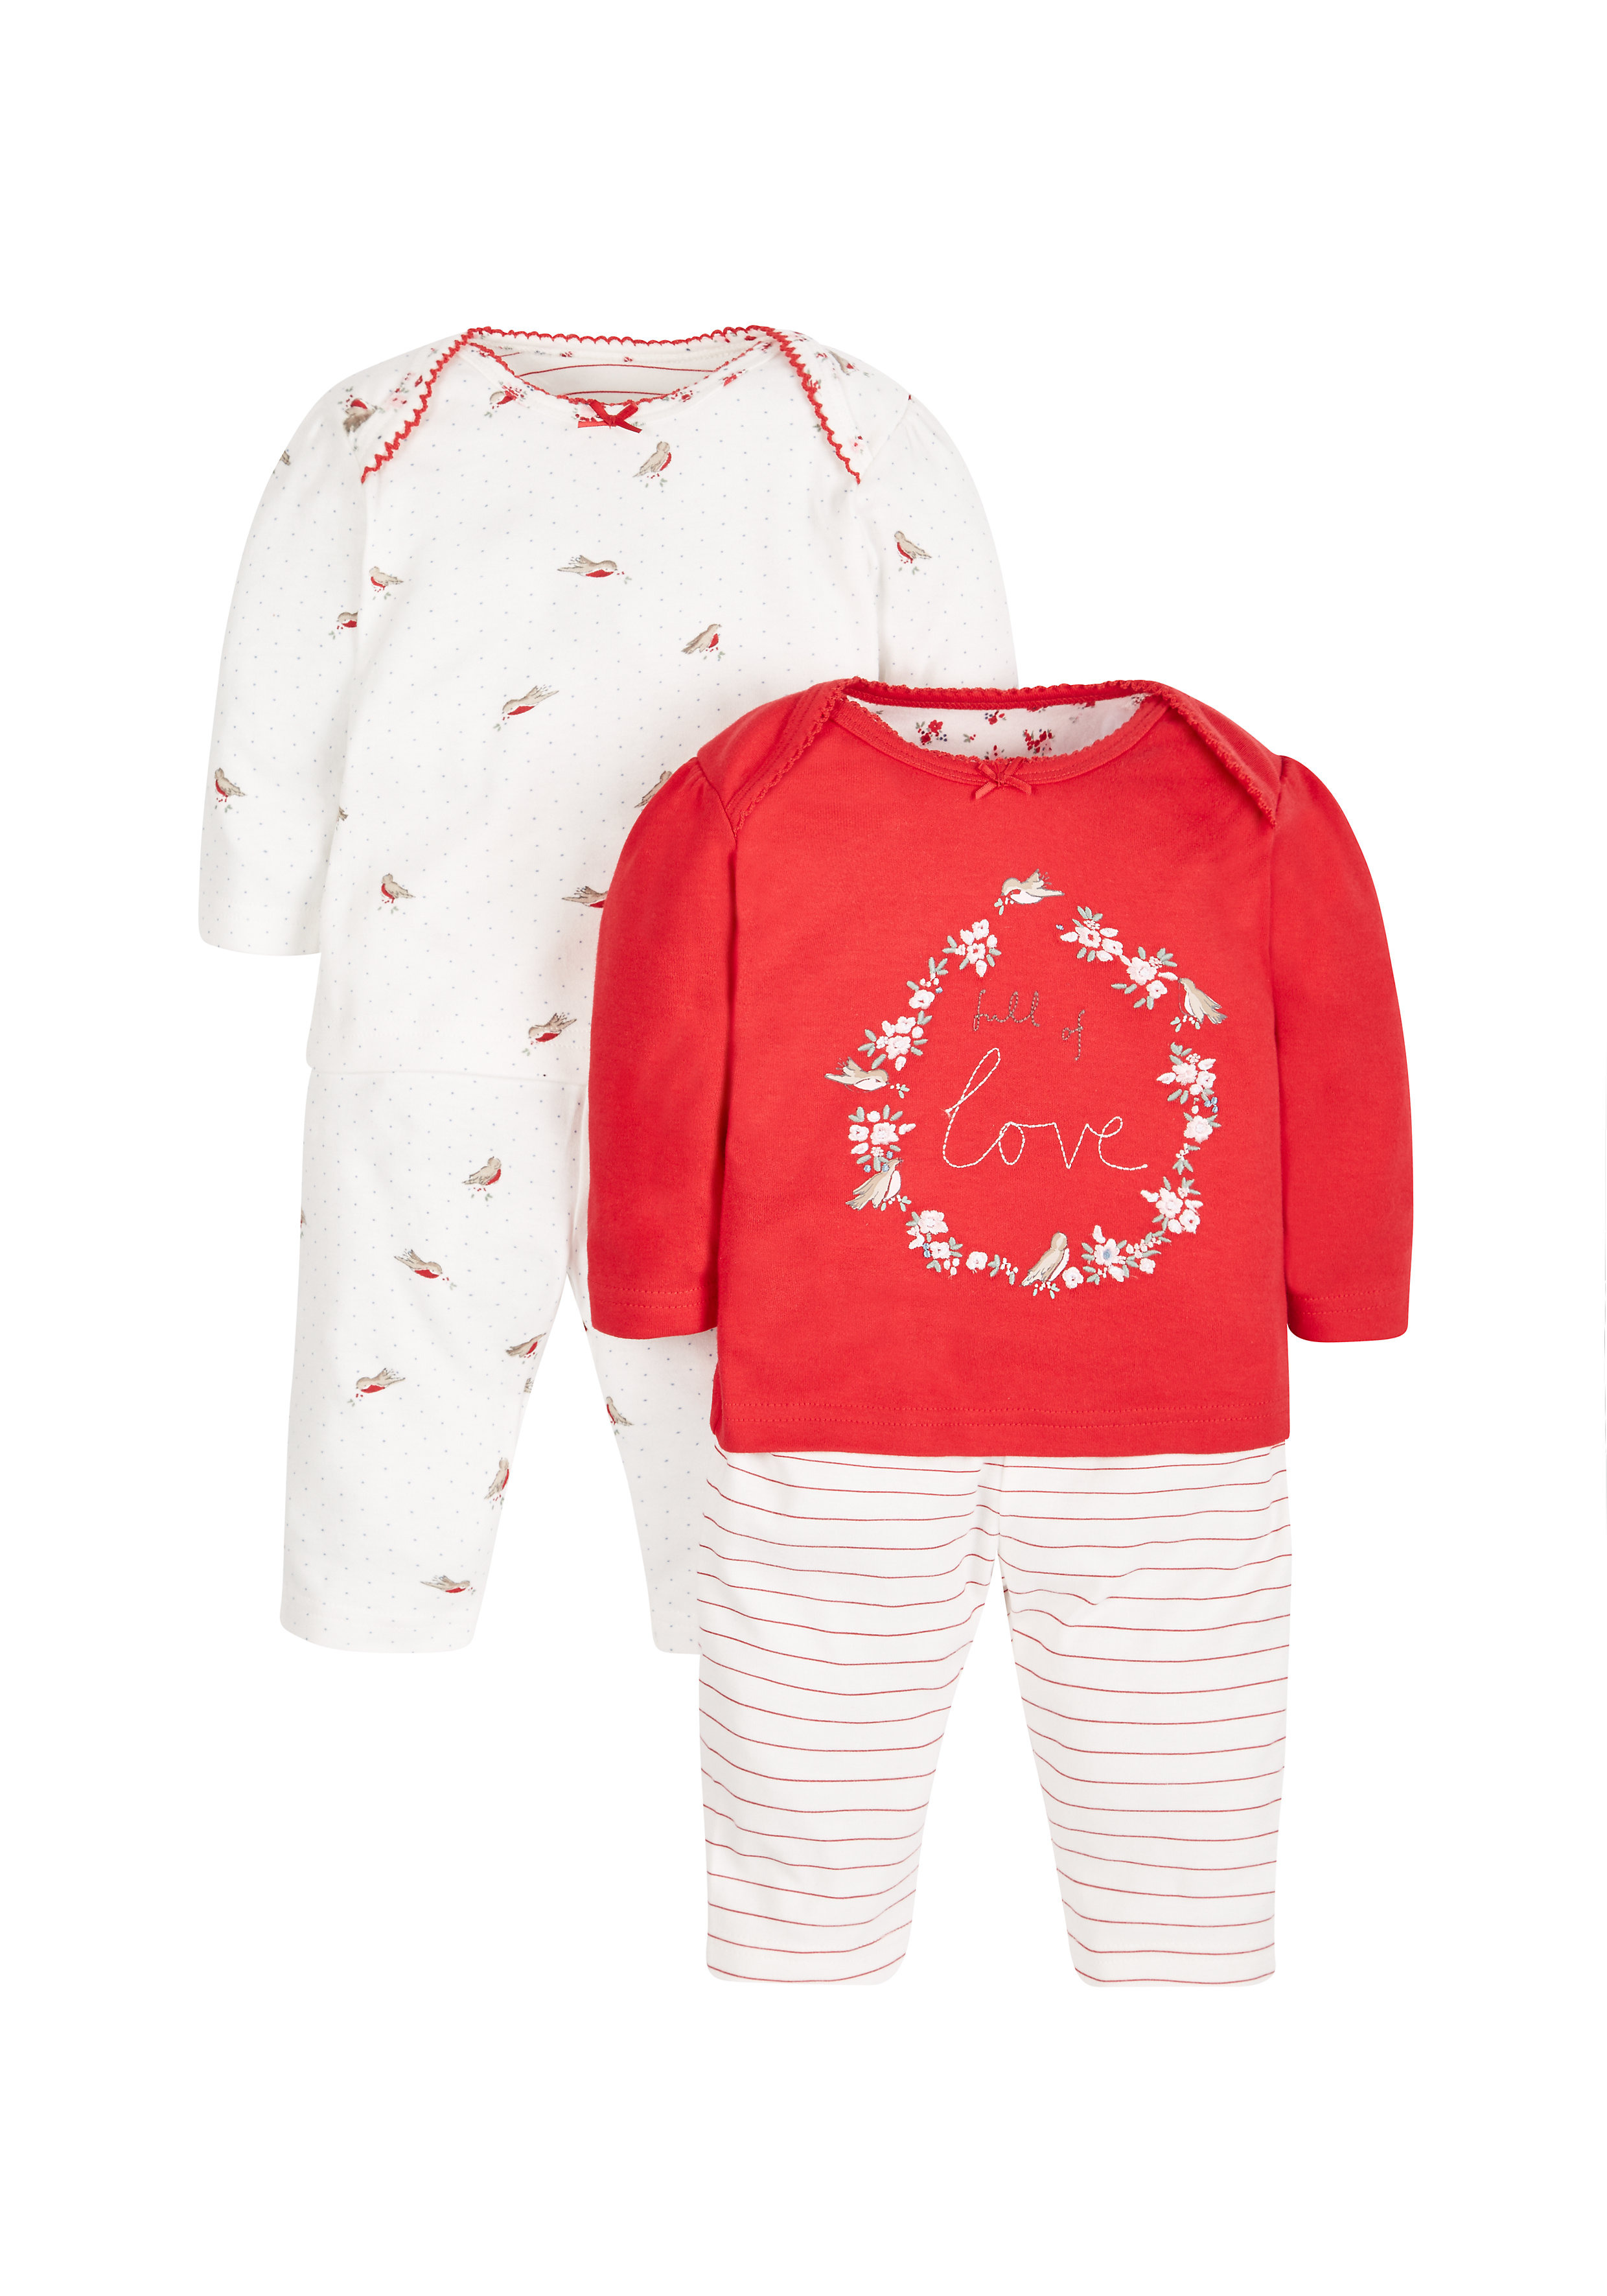 Mothercare | Girls Full Sleeves Pyjama Set Embroidered - Pack Of 2 - Red